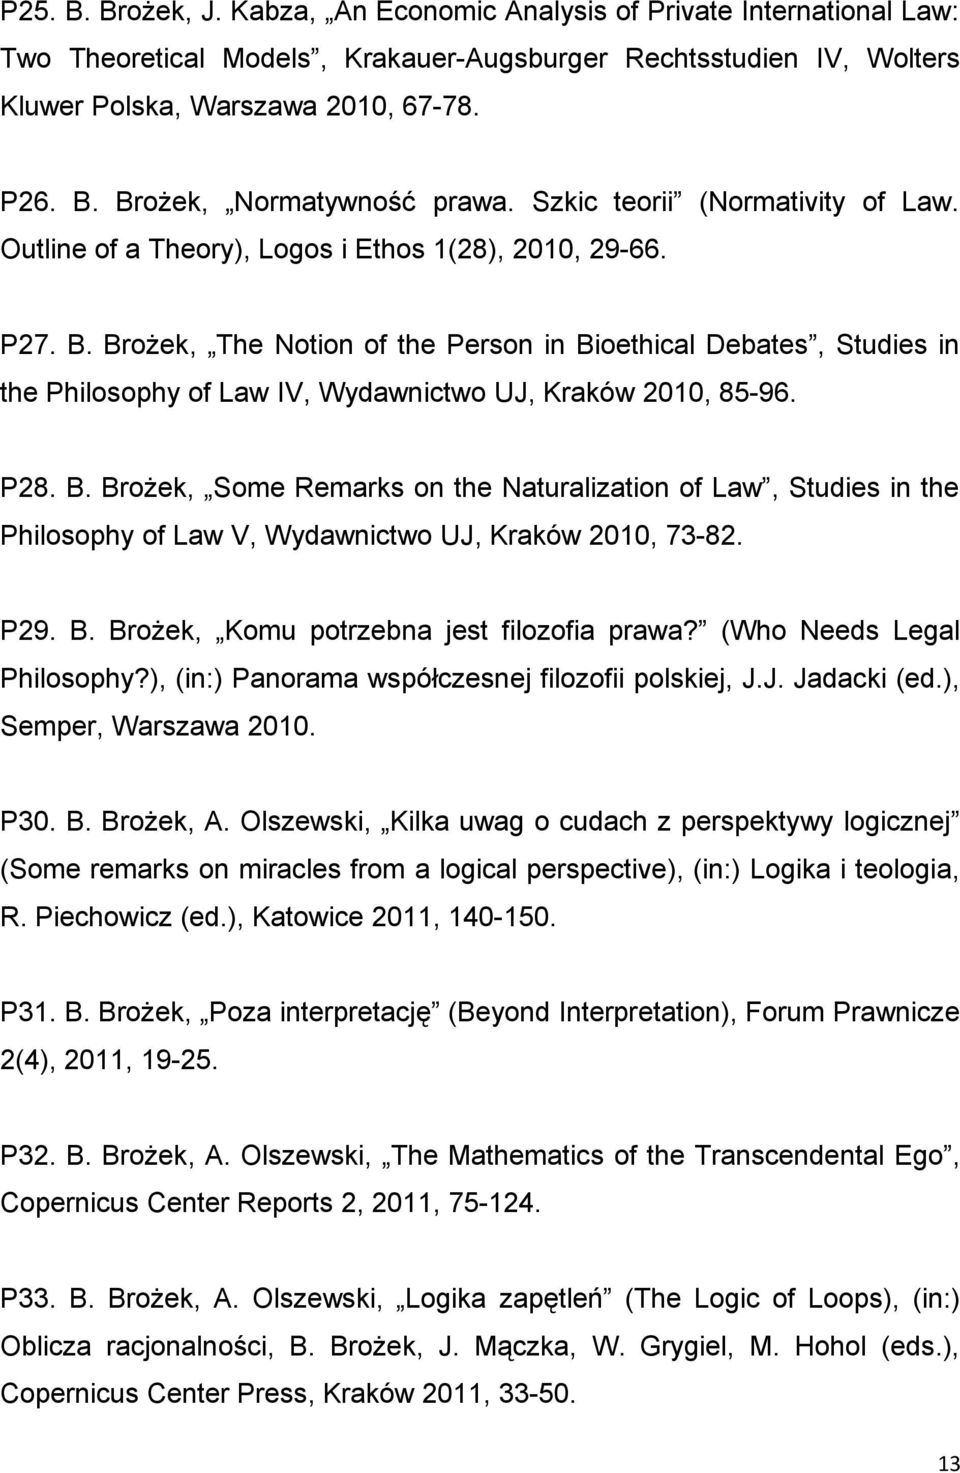 Brożek, The Notion of the Person in Bioethical Debates, Studies in the Philosophy of Law IV, Wydawnictwo UJ, Kraków 2010, 85-96. P28. B. Brożek, Some Remarks on the Naturalization of Law, Studies in the Philosophy of Law V, Wydawnictwo UJ, Kraków 2010, 73-82.